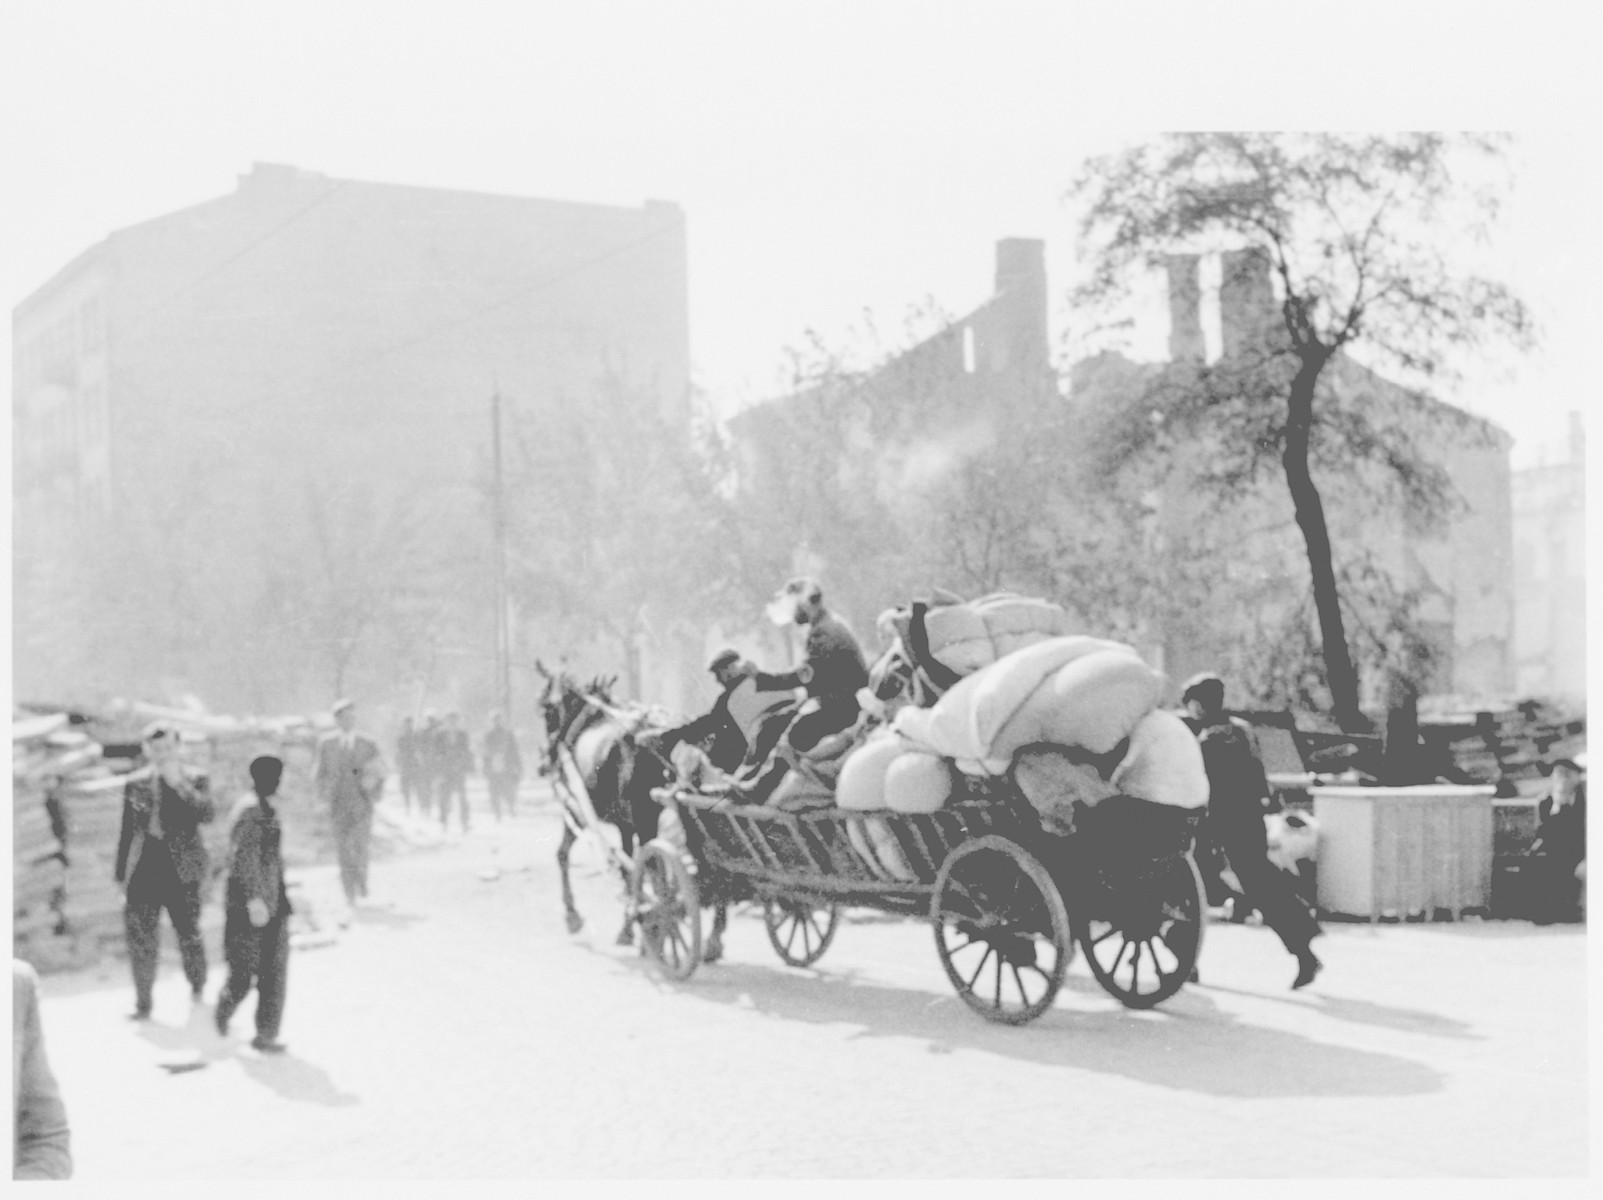 Polish refugees leave Warsaw on a horse-drawn wagon loaded with their personal property during the German siege of the capital.